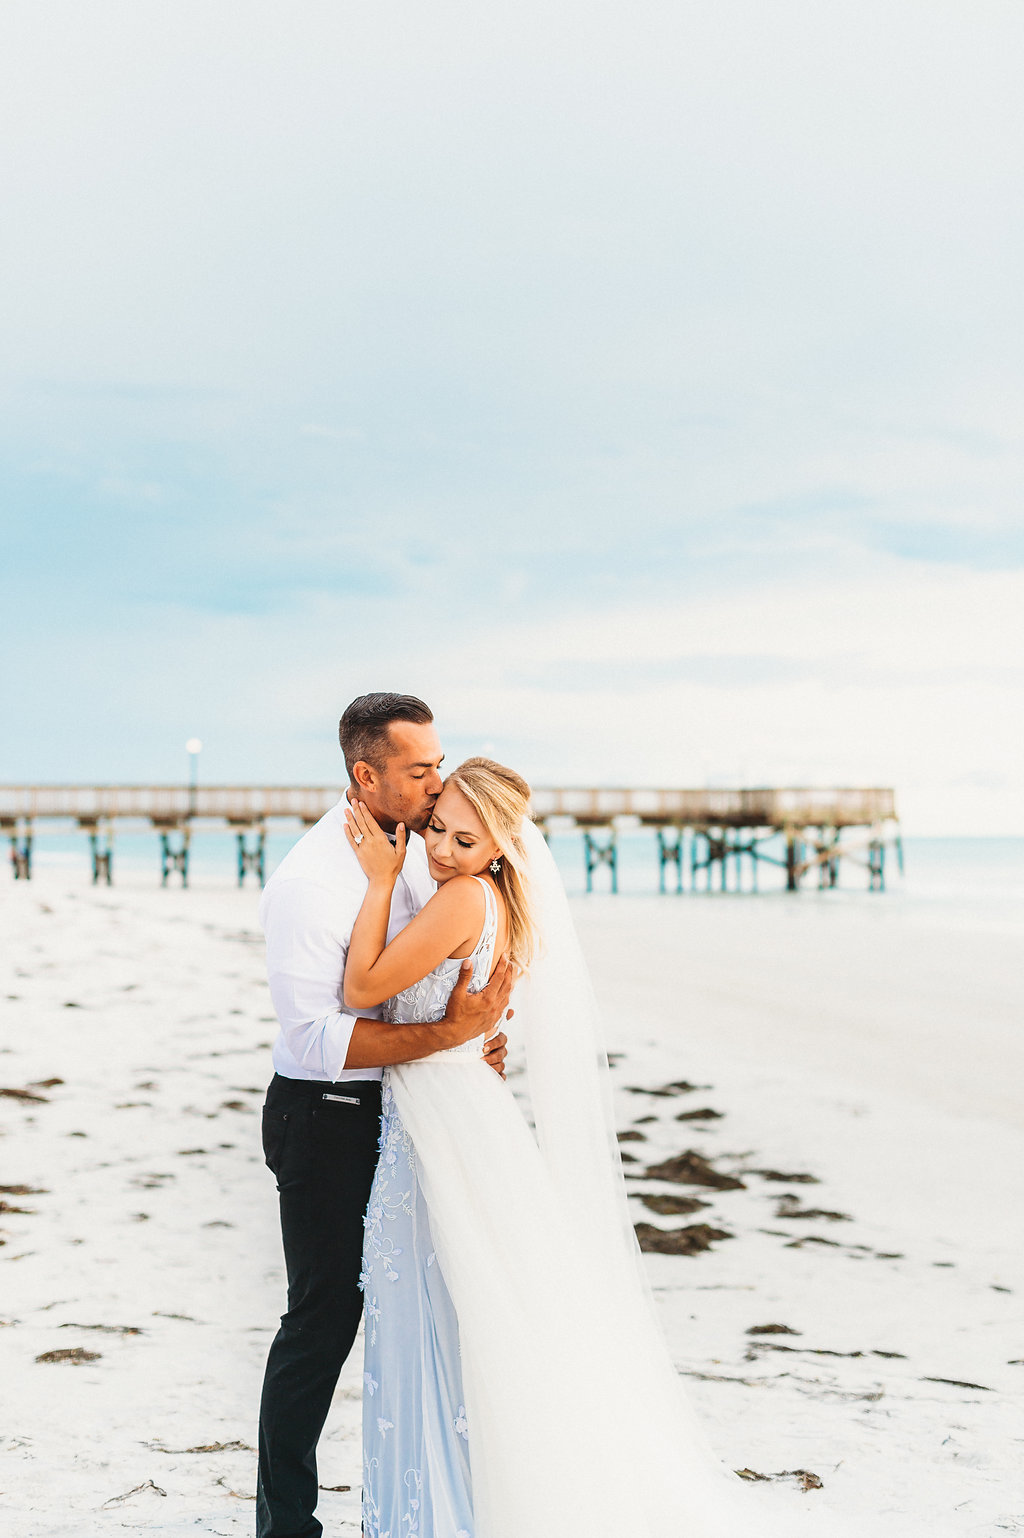 Coastal, St. Pete Beach Waterfront Bride and Groom Wedding Portrait, Bride in Sleeveless Illusion Neckline Floral Overlay and Light Blue Wedding Dress with Tulle Skirt and Veil